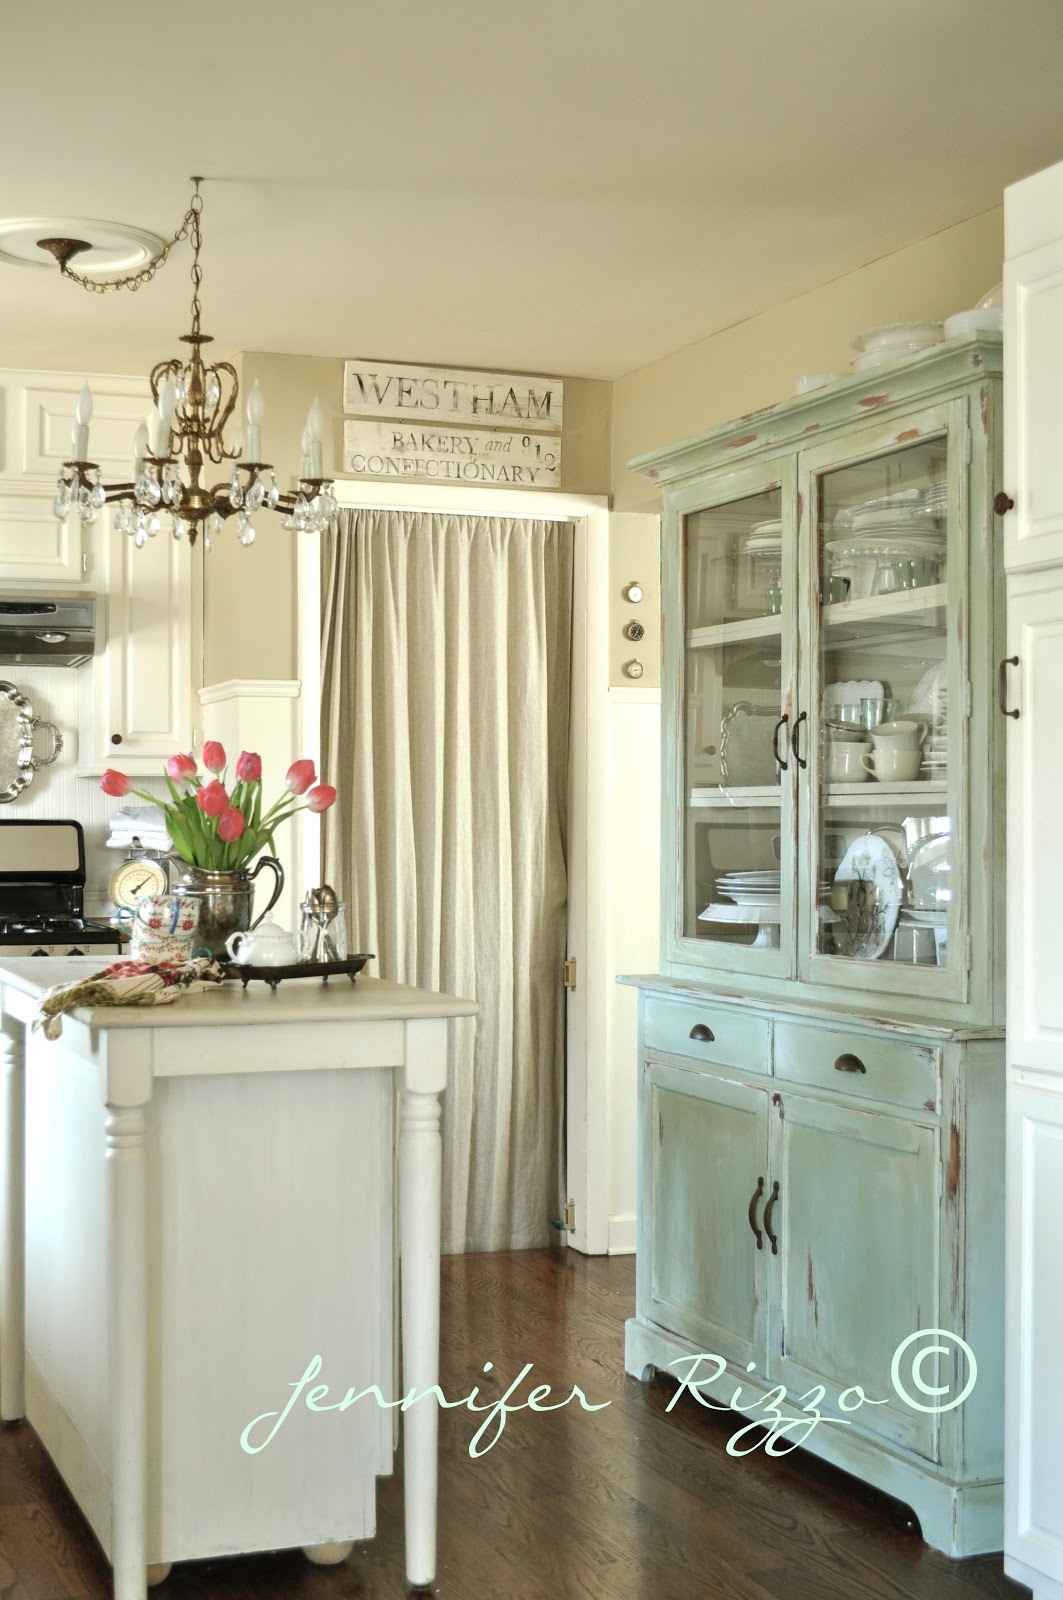 Kitchen Cabinet China May Days 10 Repurpose Ideas For A China Cabinet